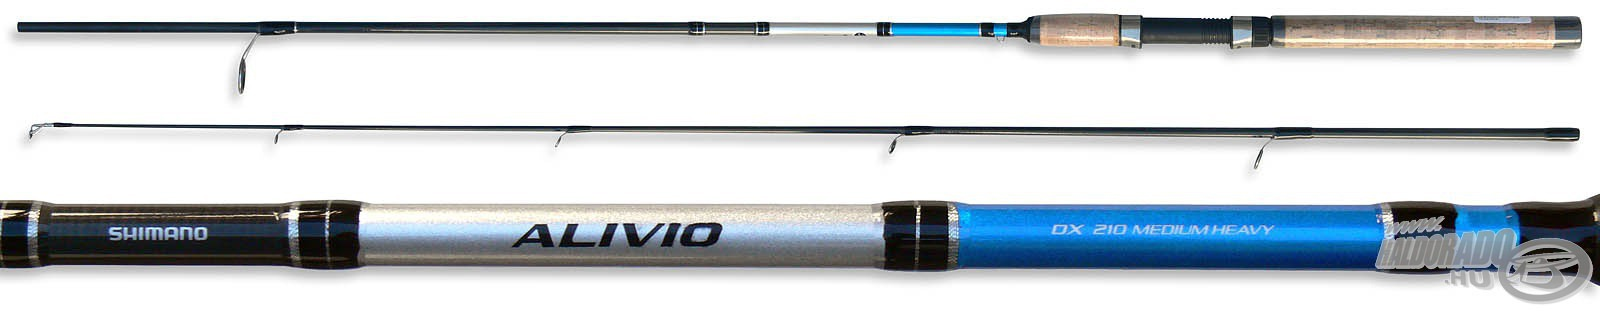 SHIMANO, Alivio, DX, Spin, 8790Ft